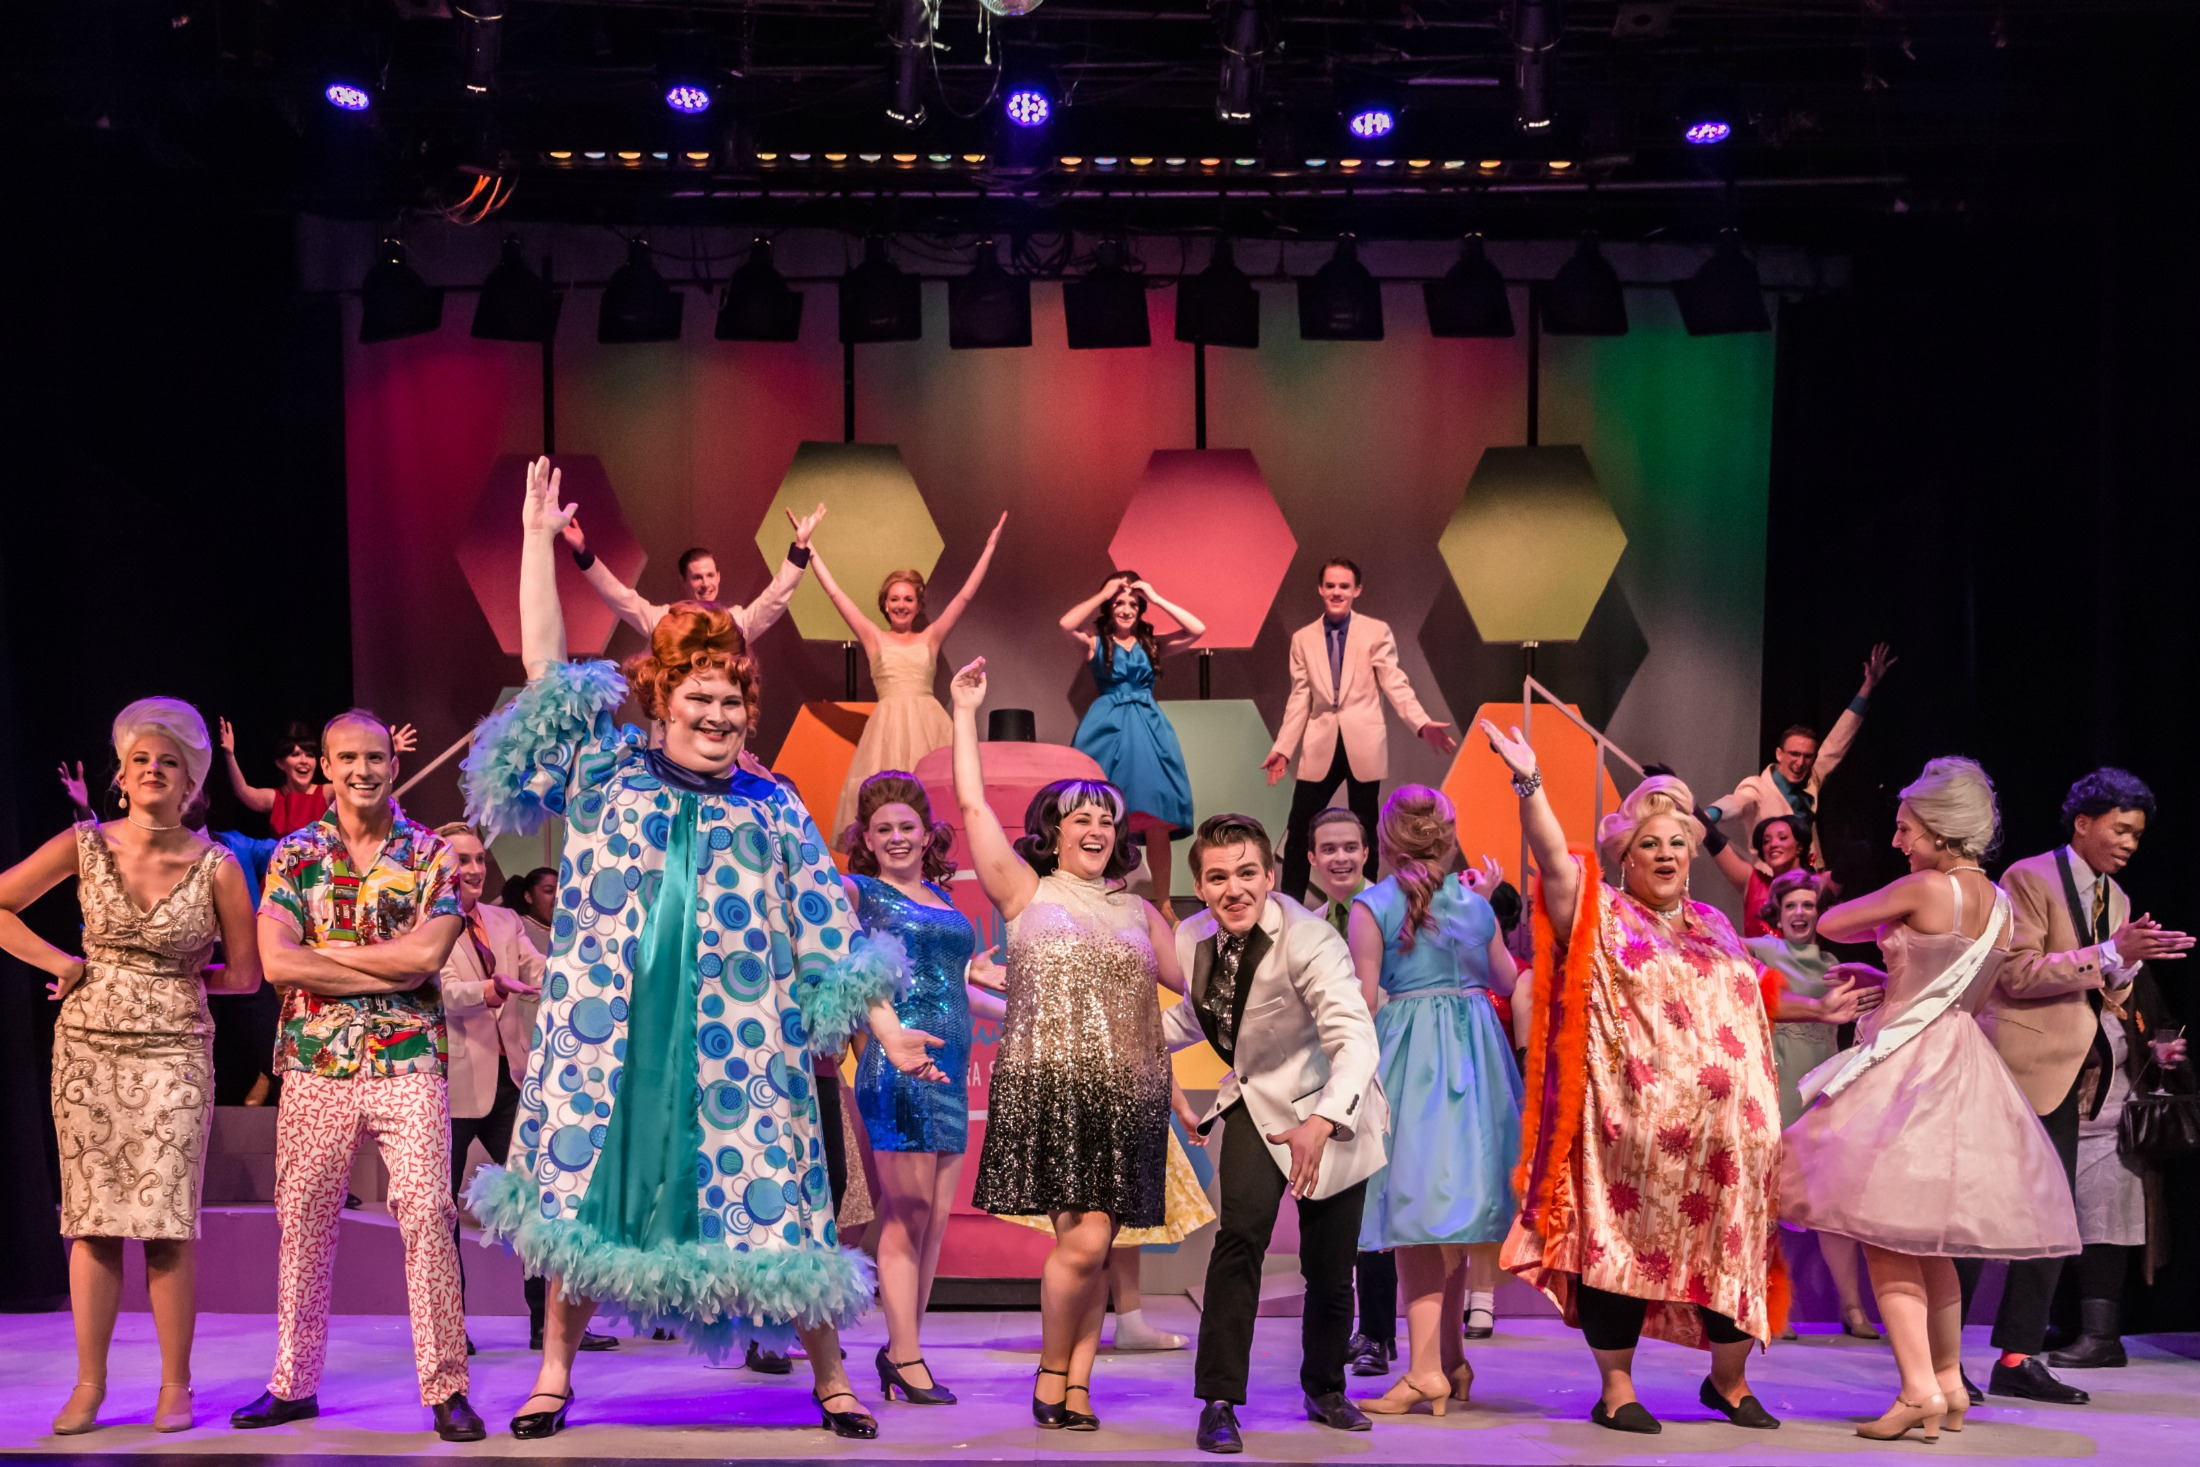 """Tracy (Emma Borkowski), and Link (Daniel Persino), center, lead """"You Can't Stop the Beat"""" along with, from left, front, Velma (Megan Rose Miller), Wilbur (Keith R. Smith), Edna (Noah Maguire), Penny (Amber Weissen), Motormouth Maybelle (Sharon Tyler) and Amber (Hope Riesterer), the finale of Sunset's """"Hairspray."""""""